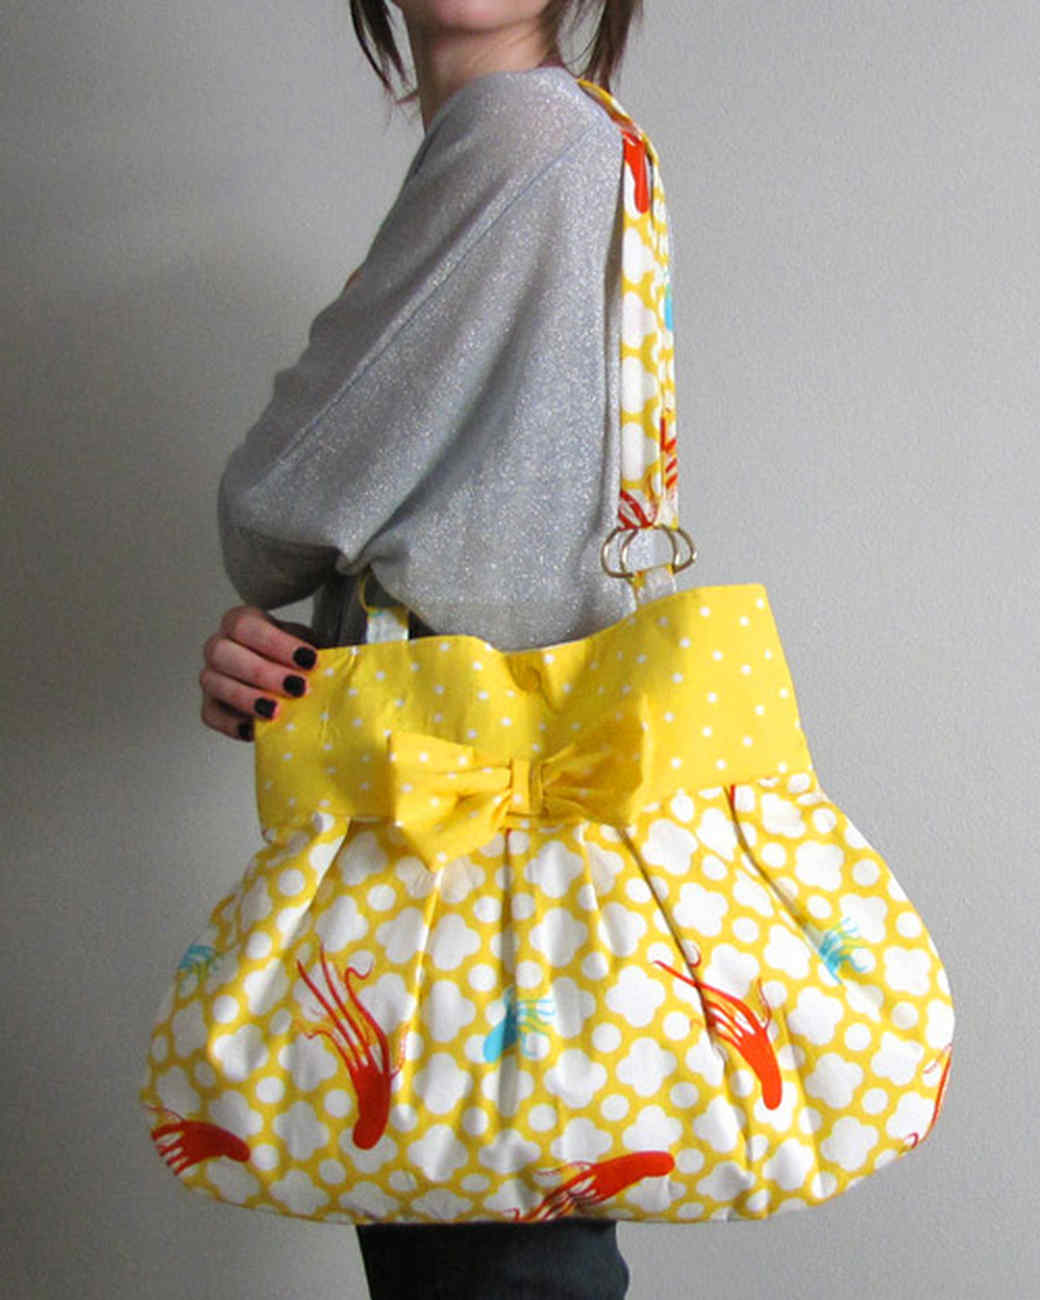 Your Sewing Projects: Bags and Purses | Martha Stewart